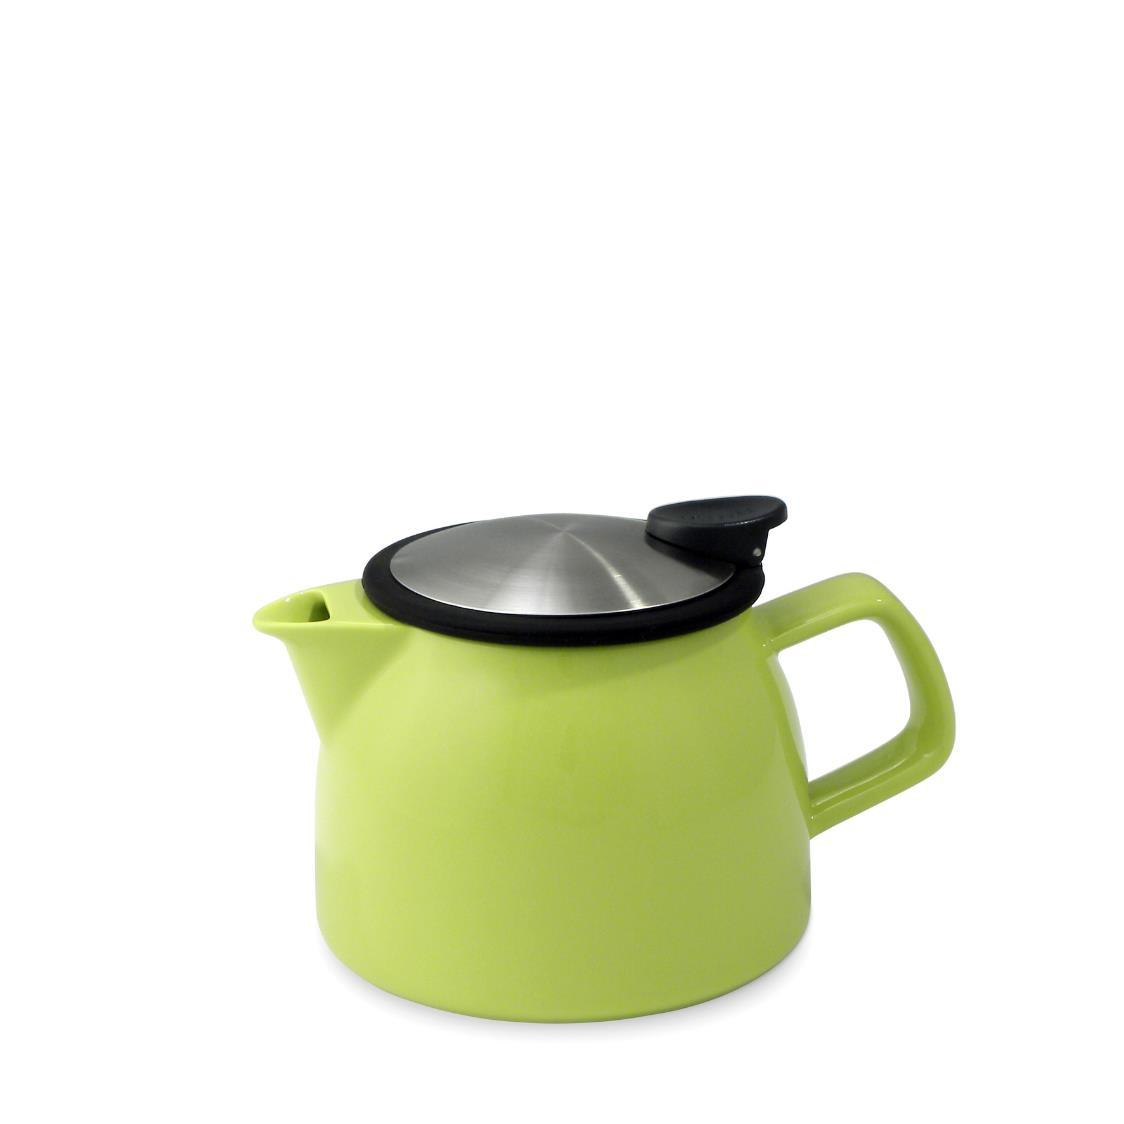 Bell Teapot with Basket Infuser 470ml FL543-LME